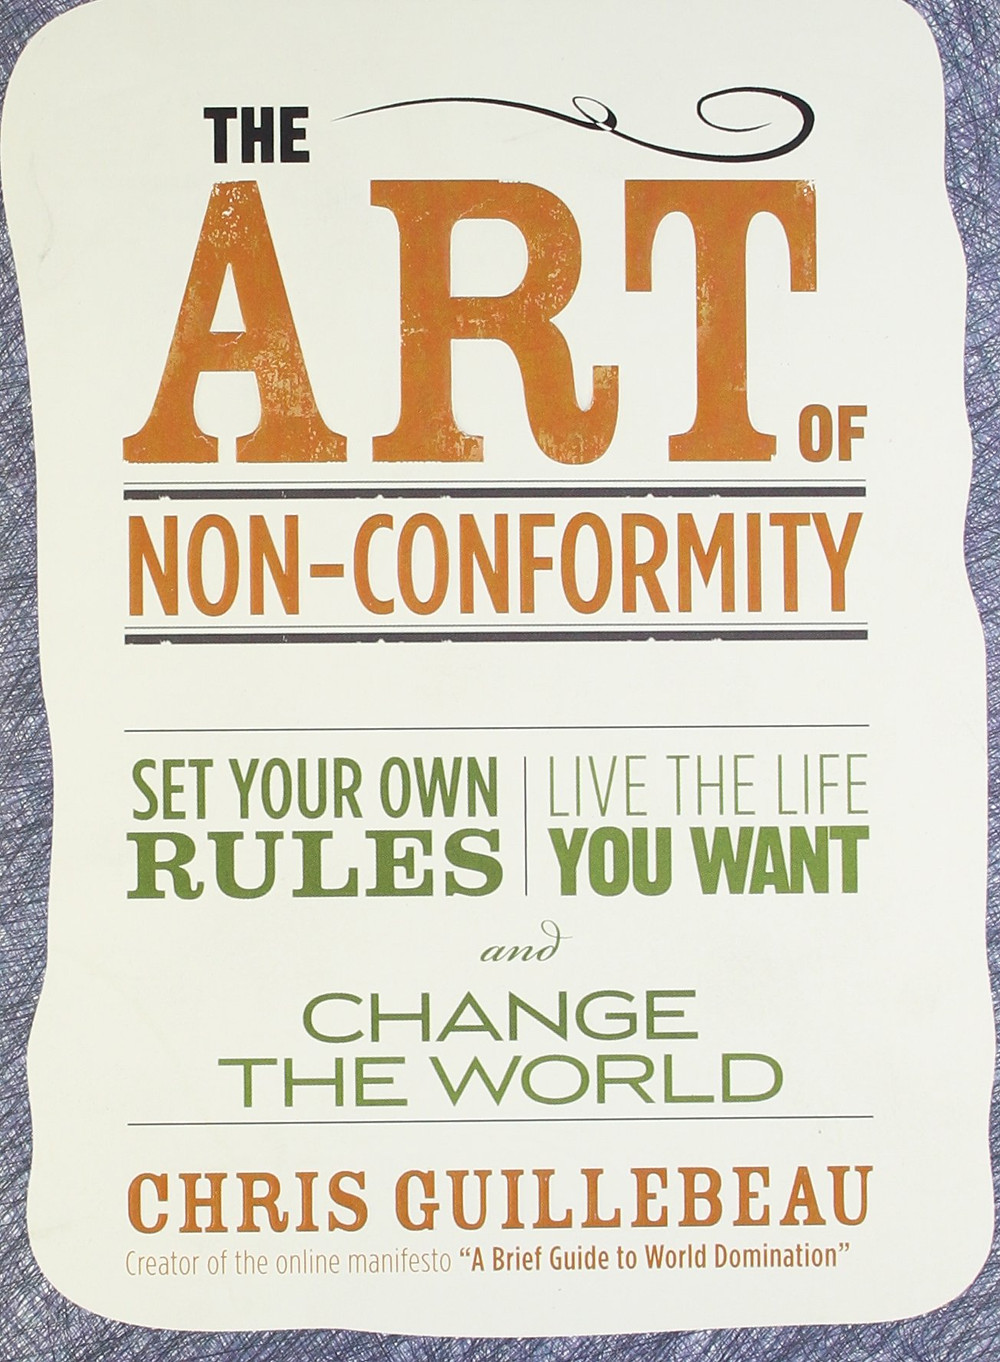 The Art of Non-Conformity. Chris Guillebeau. Book Cover from Amazon.com. Destiny Yarbro. Motivational Speaker and Quotes.